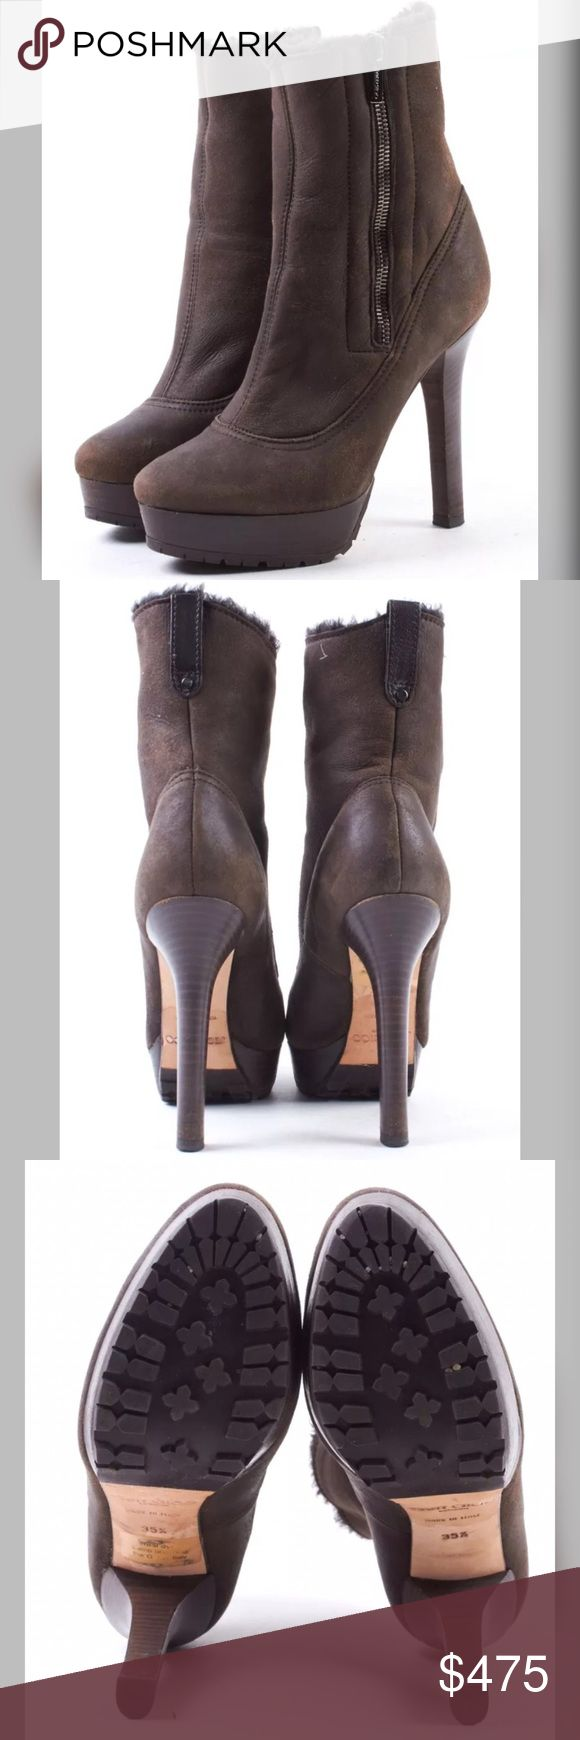 Jimmy Choo shearling fur ankle boots These are AMAZING!! Brown suede with shearling fur-. Very light wear. A must have for any Jimmy Choo collector! Comes with dust bag. Jimmy Choo Shoes Ankle Boots & Booties